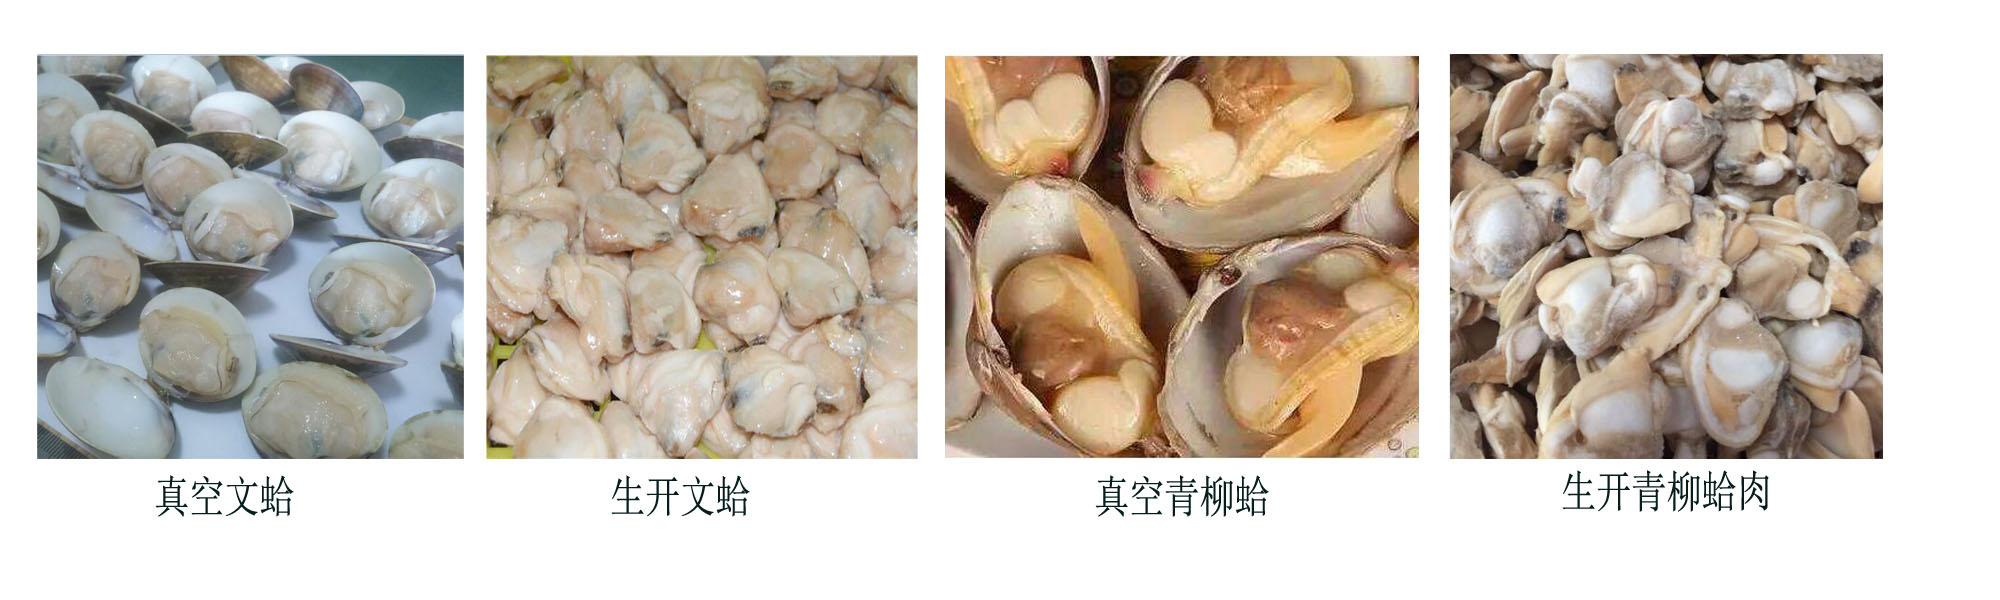 high quality frozen boiled whole mussel